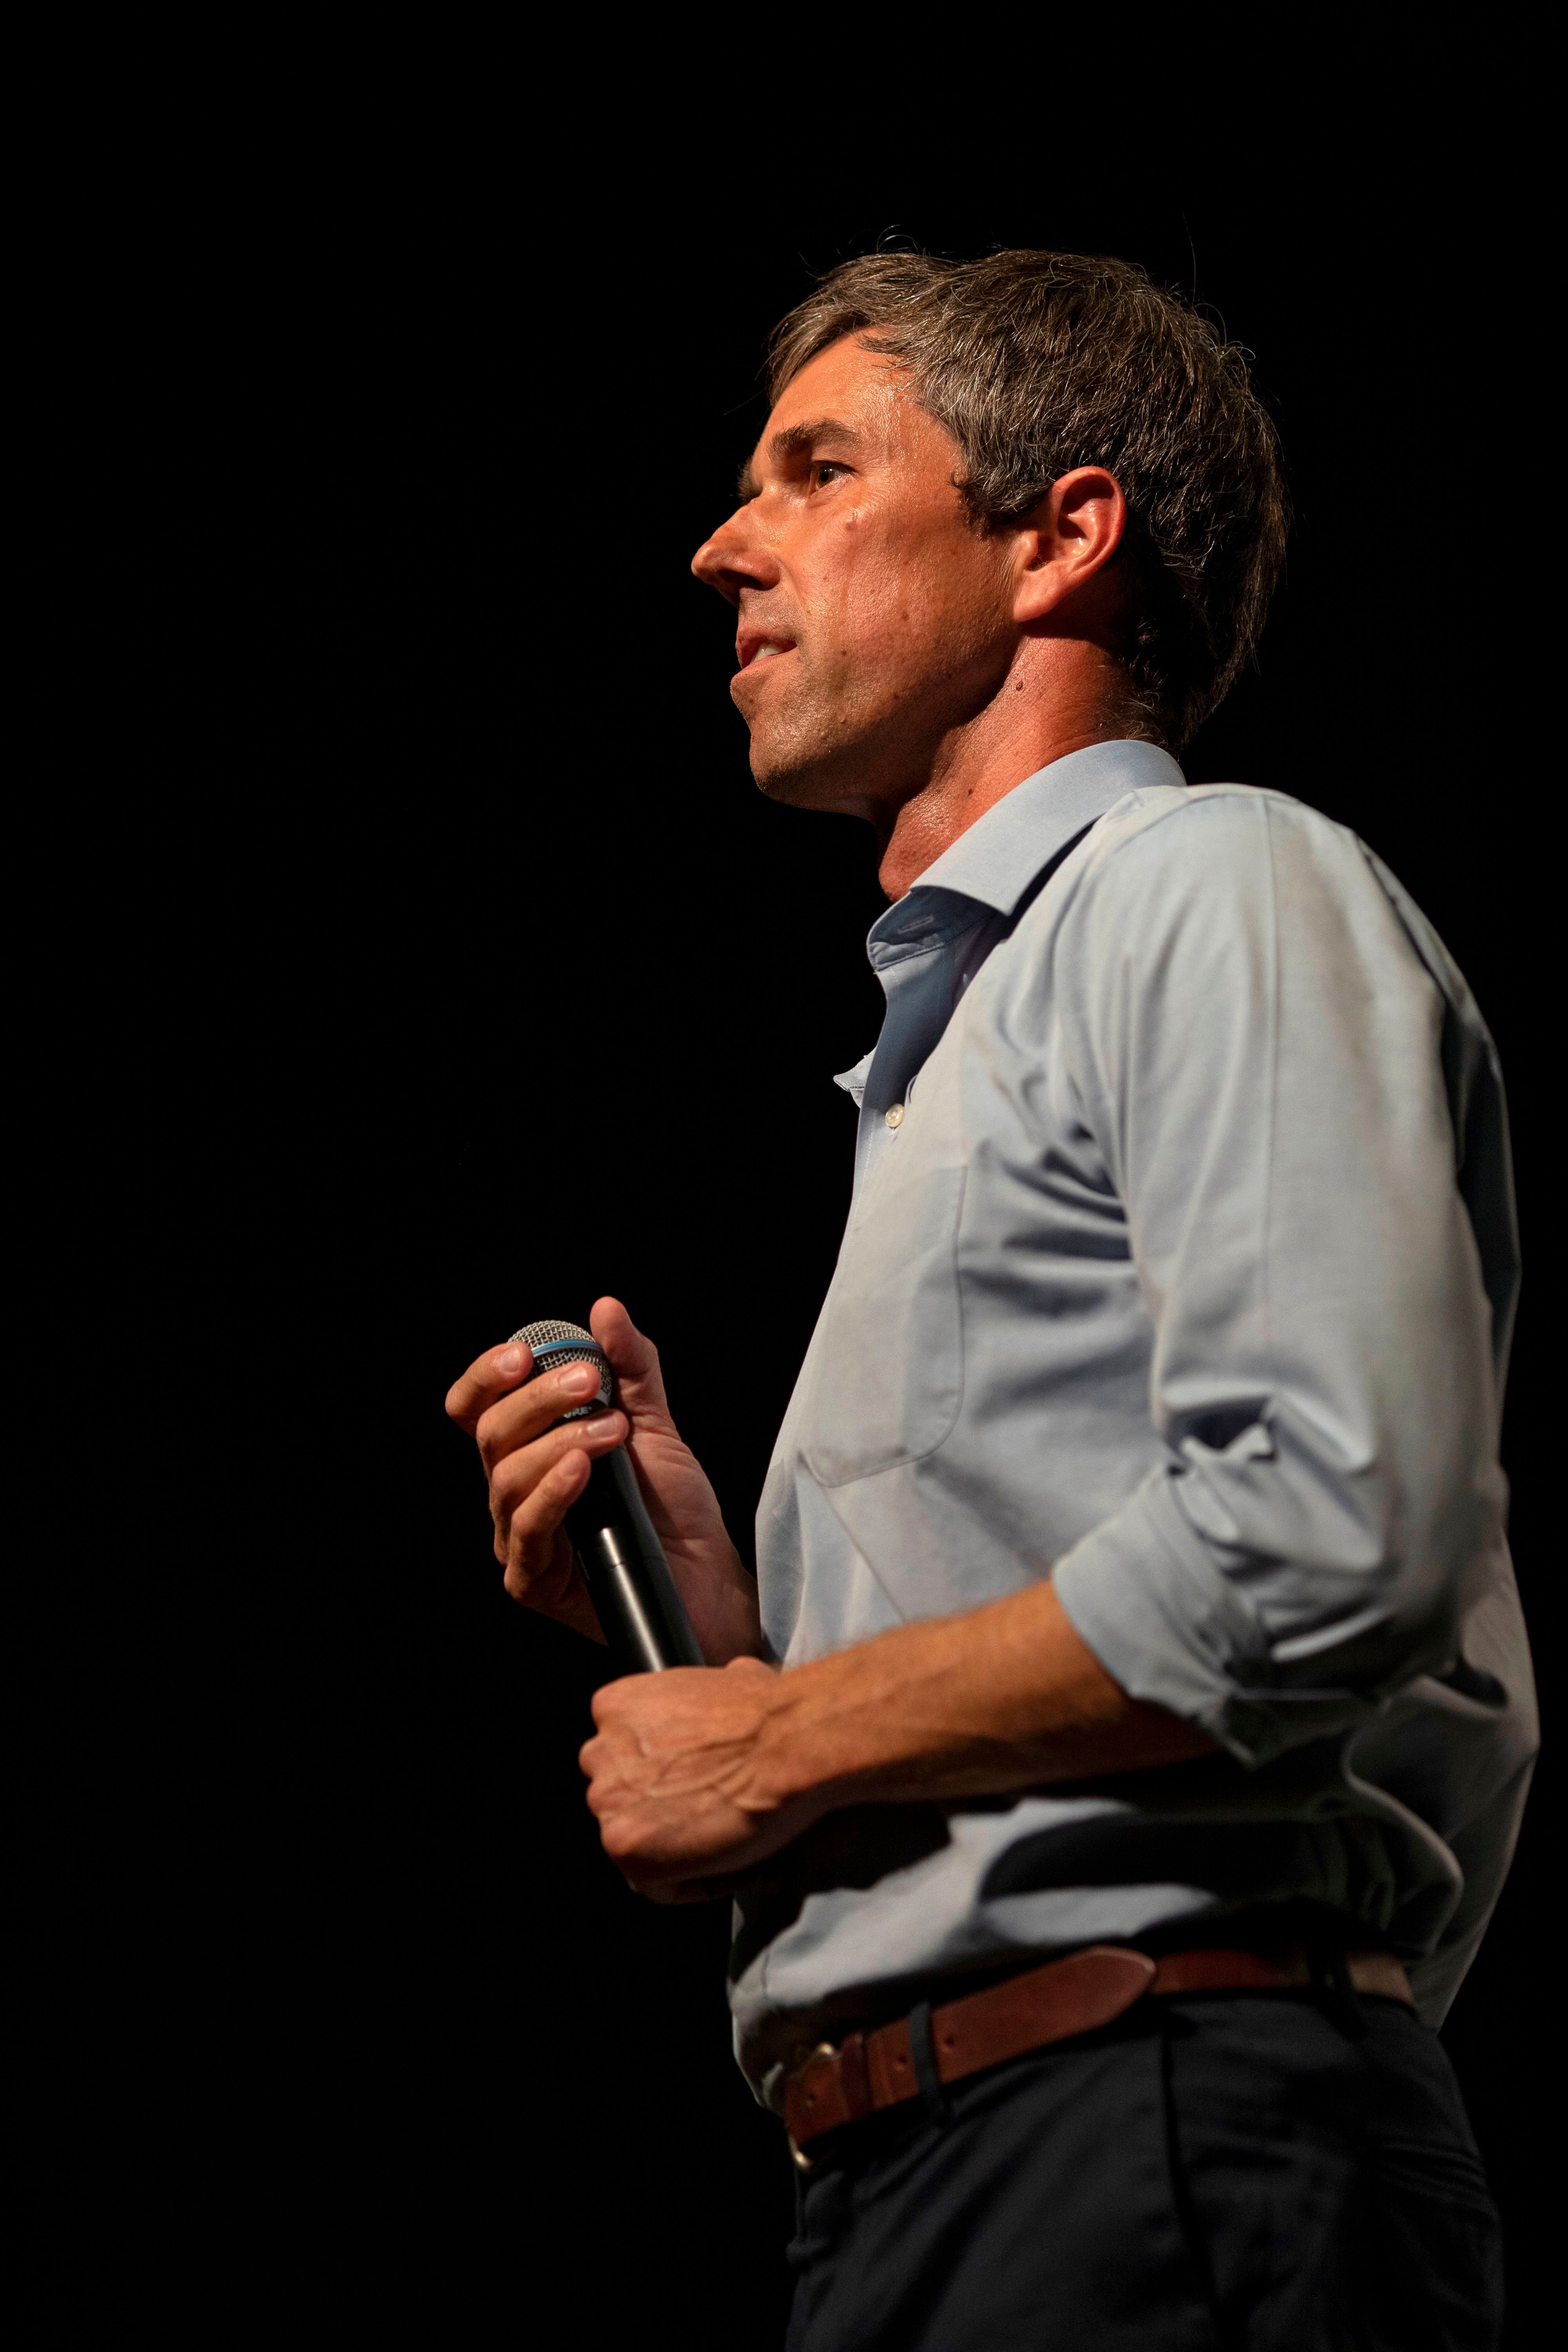 Rep. Beto O'Rourke (D-Texas) criticized tear-gassing migrants at the U.S.-Mexico border on Nov. 25 and urged more timely